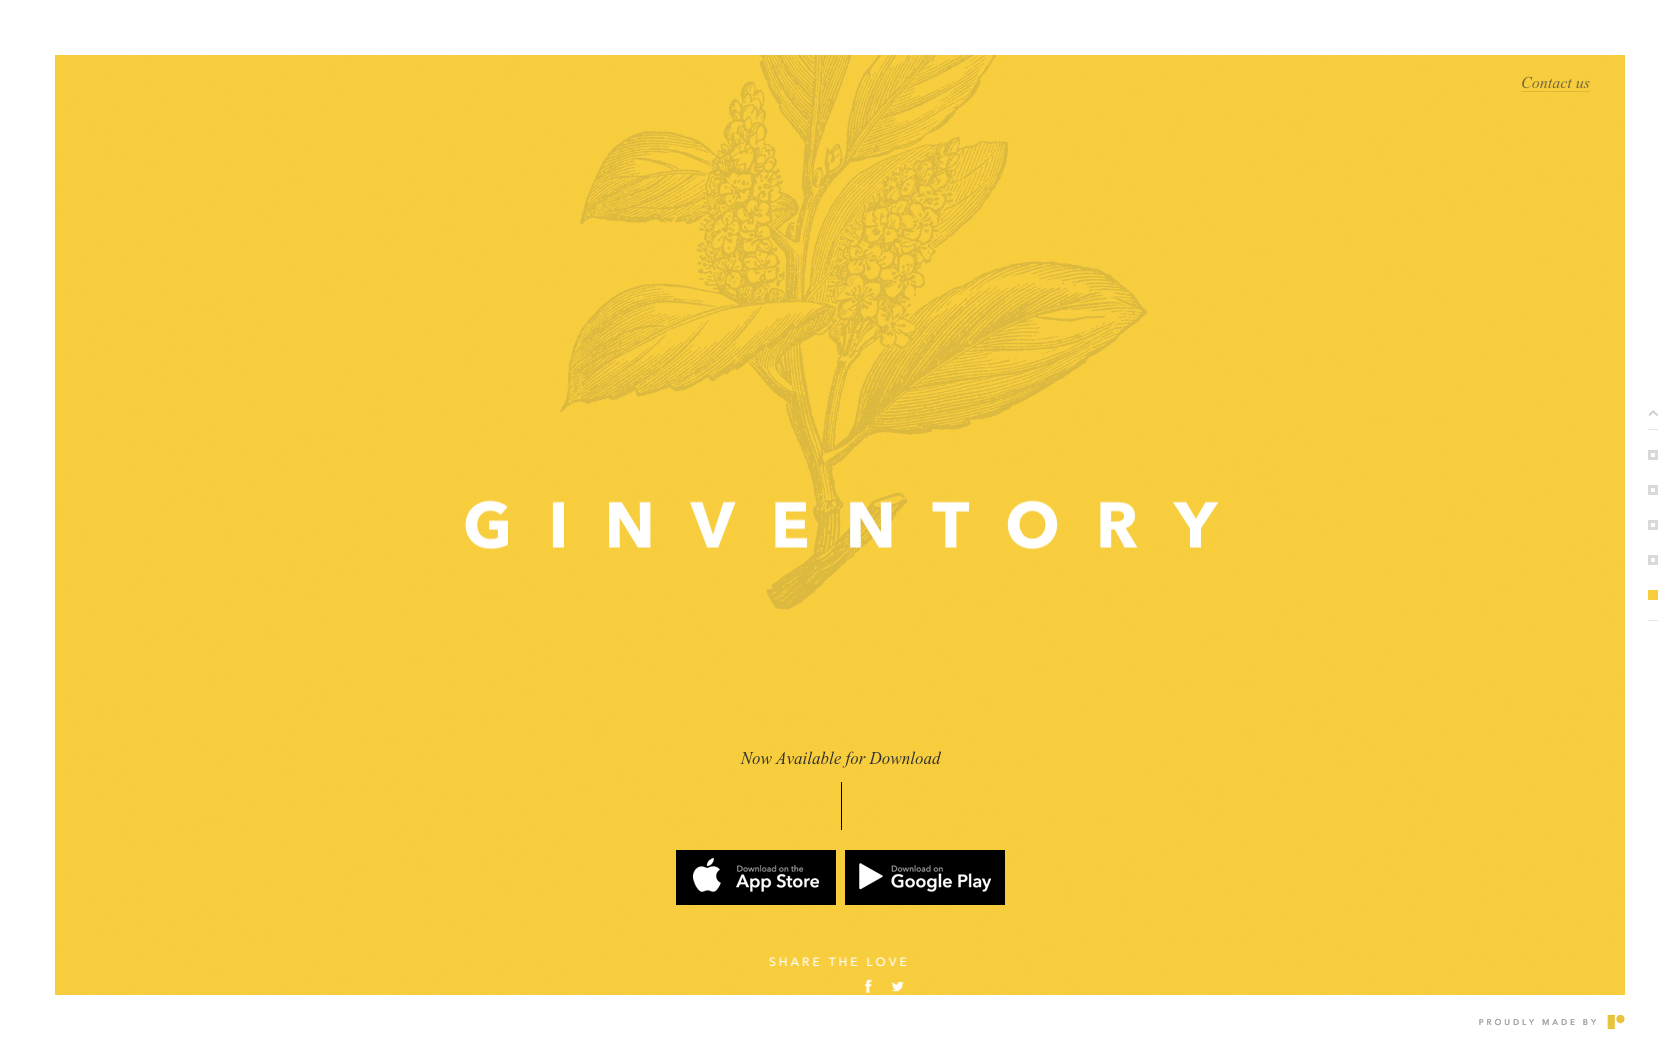 Ginventory 06